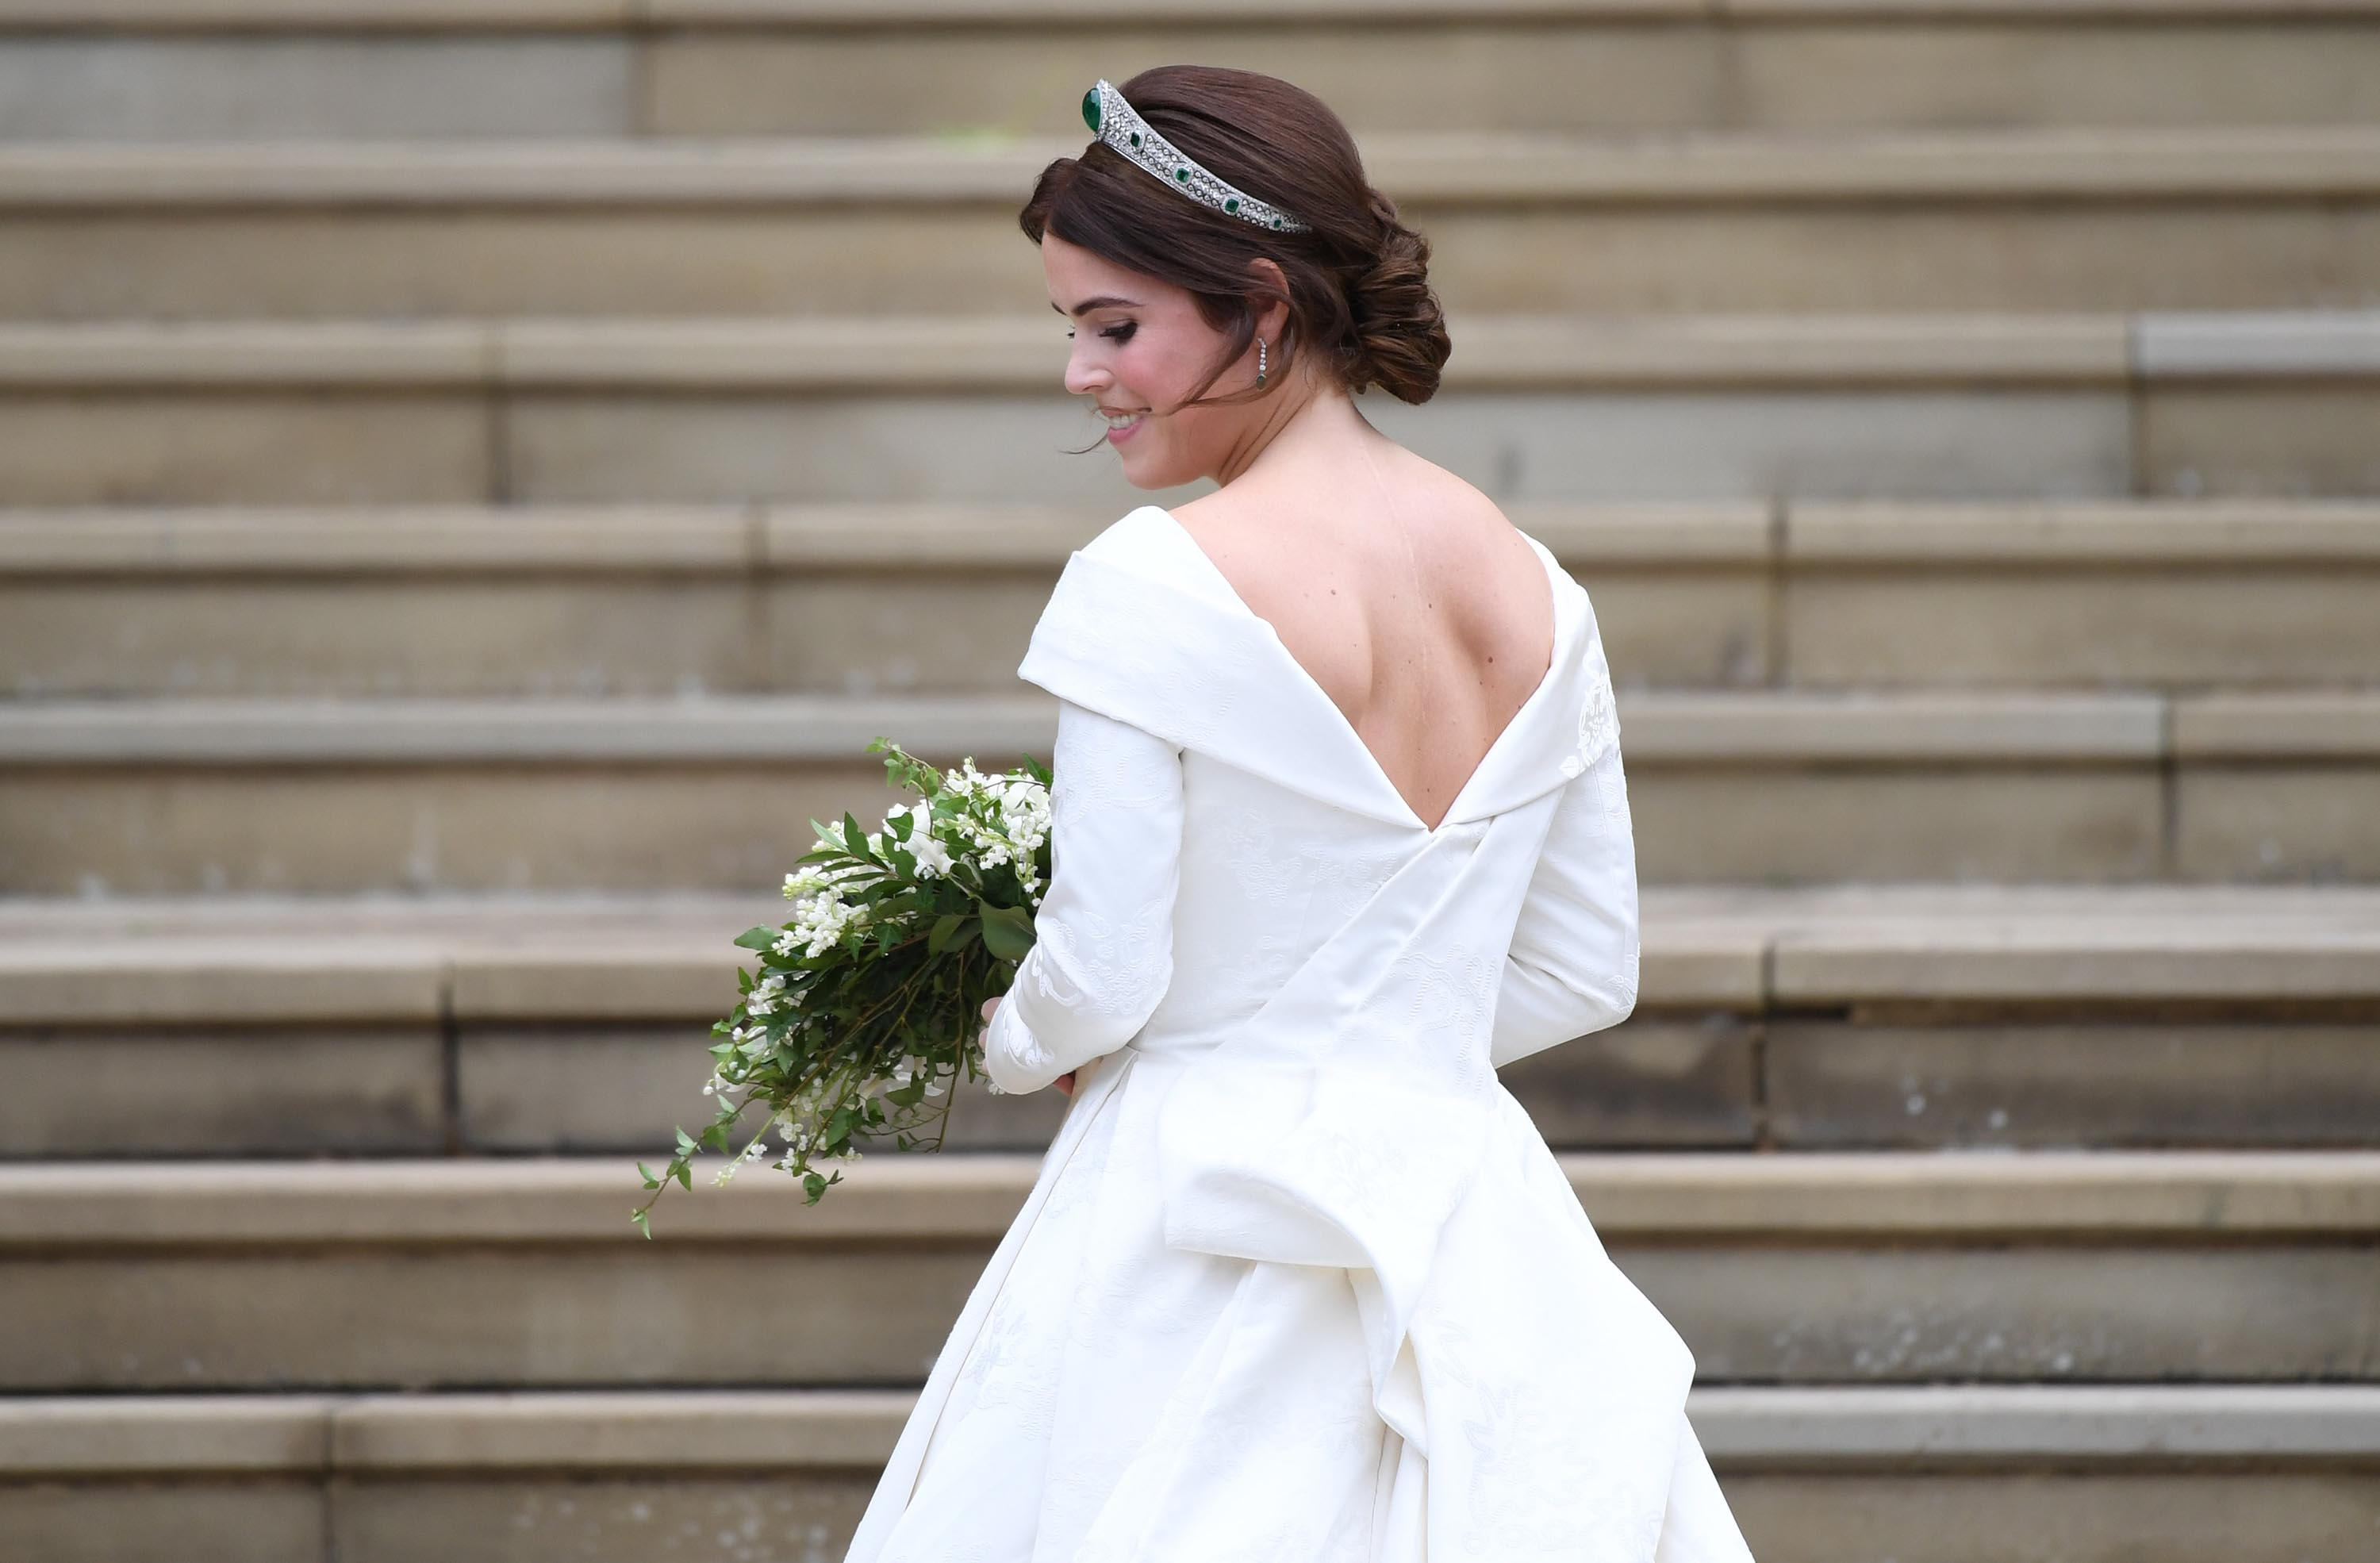 Princess Eugenie Makes Bold Statement With Wedding Dress Revealing Scars Cnn Style